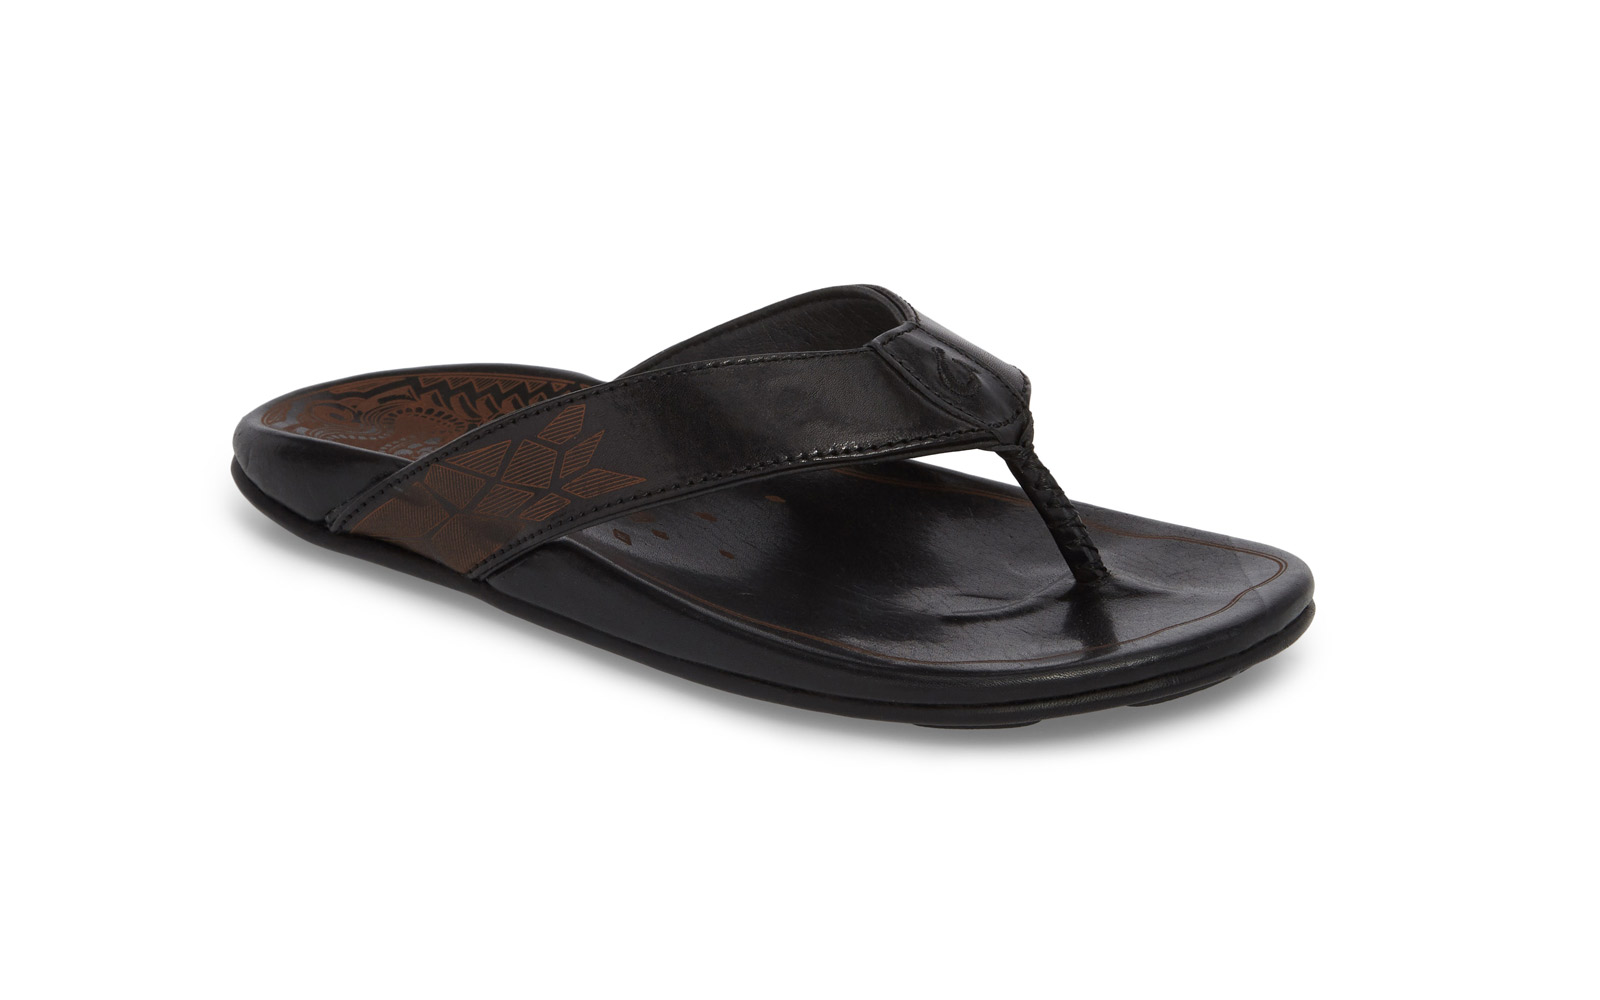 d97c341e1d79b2 The Best Men s Sandals to Pack for Your Next Vacation